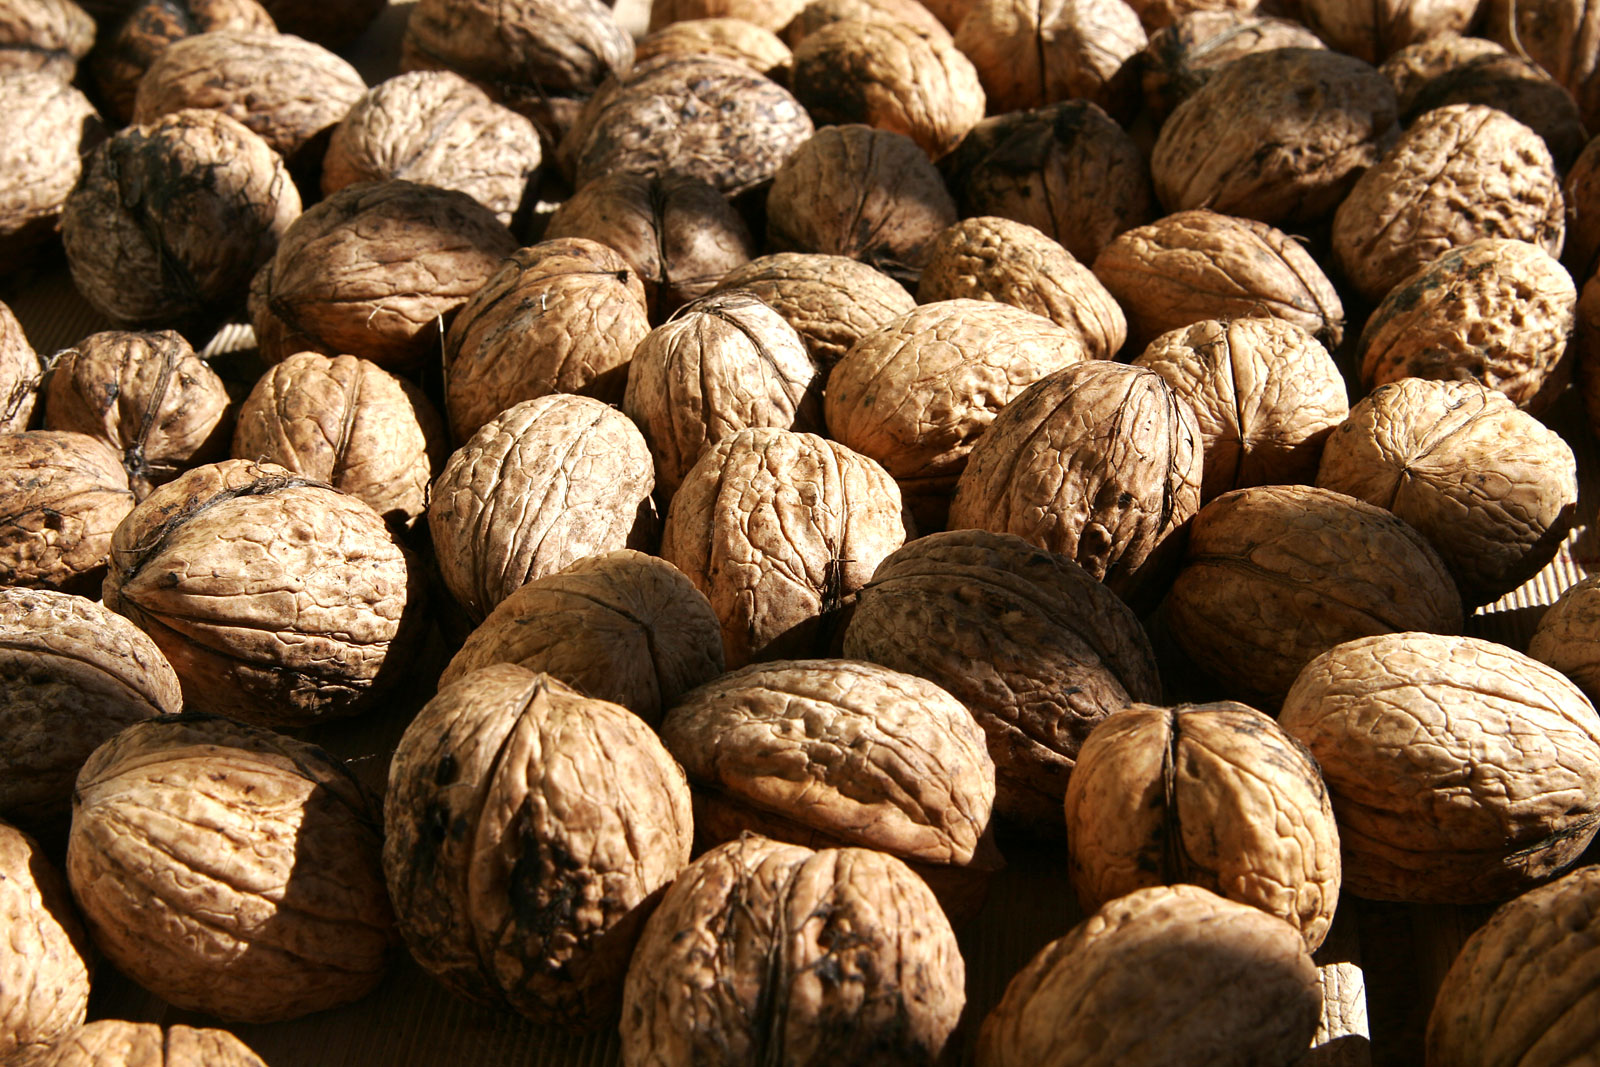 File:Walnuts02.jpg